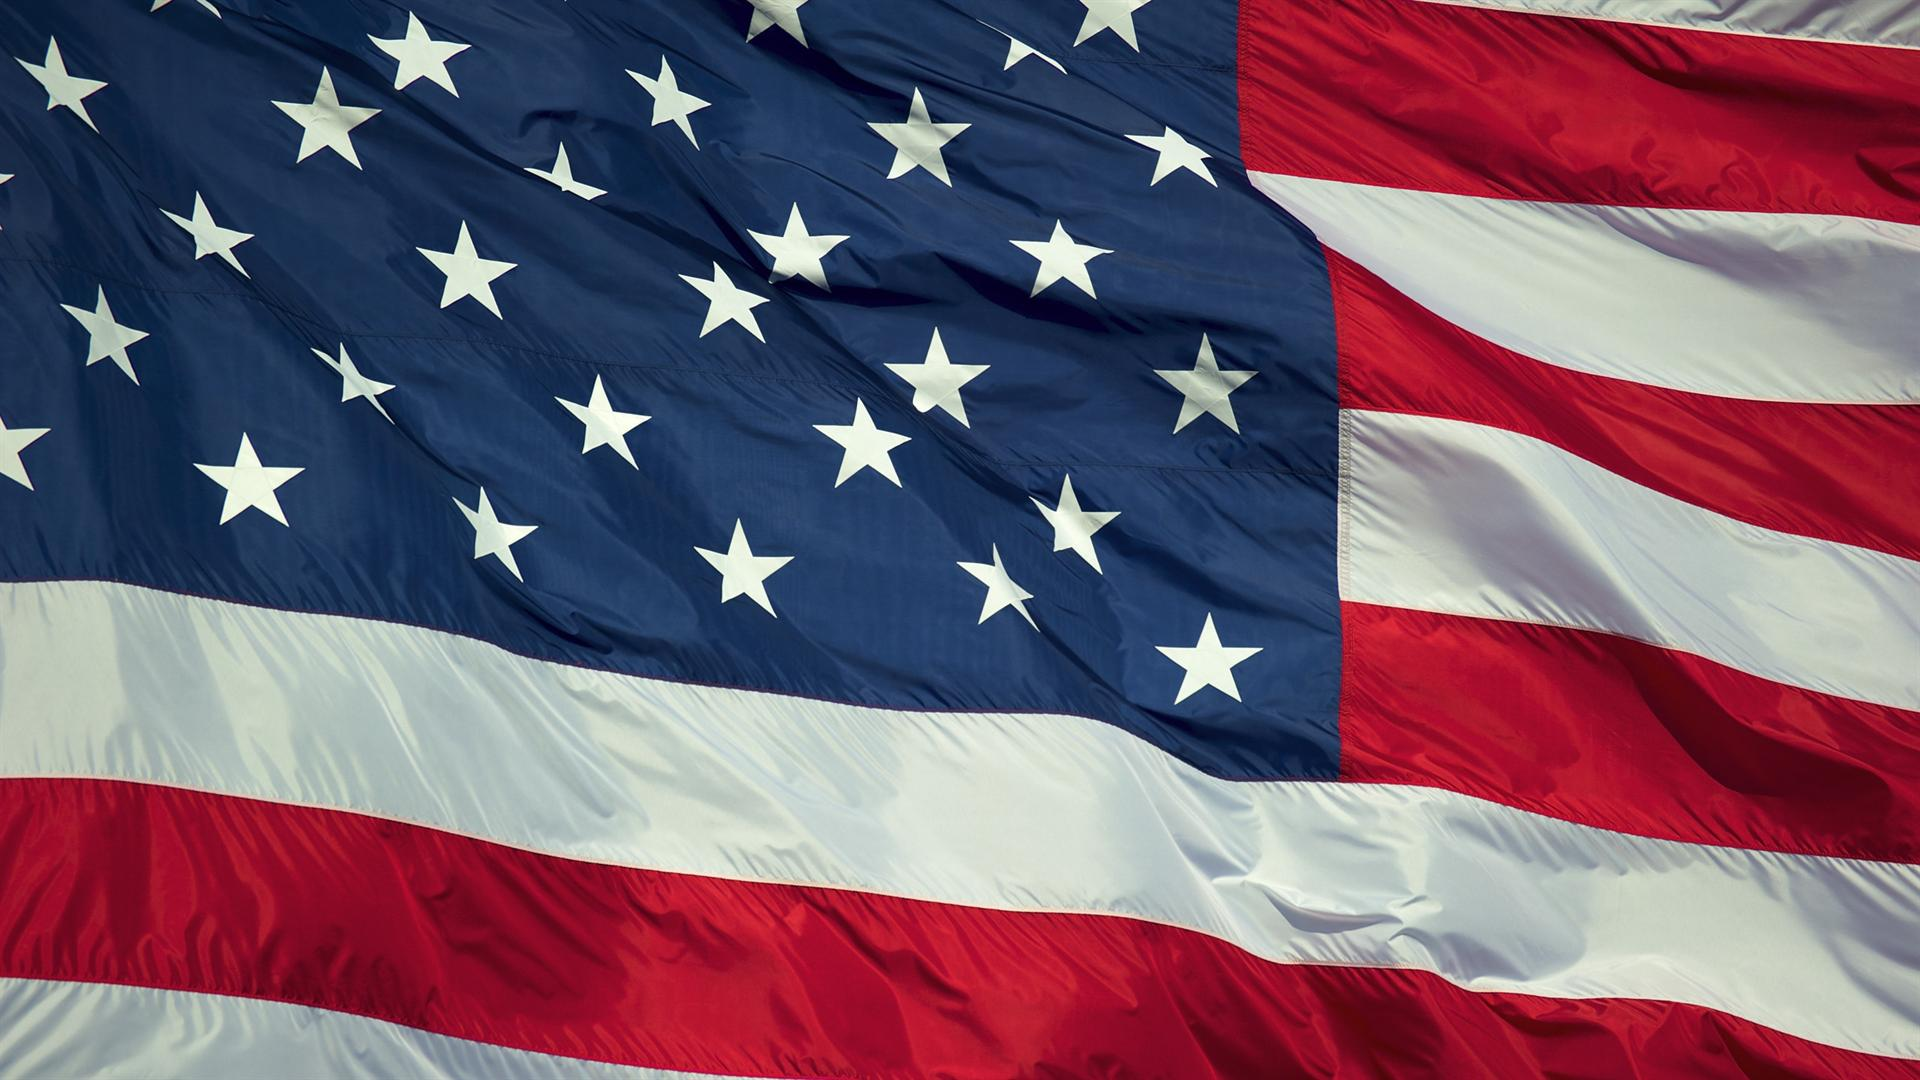 United States Flag Desktop Wallpaper Background Desktop Wallpaper 1920x1080